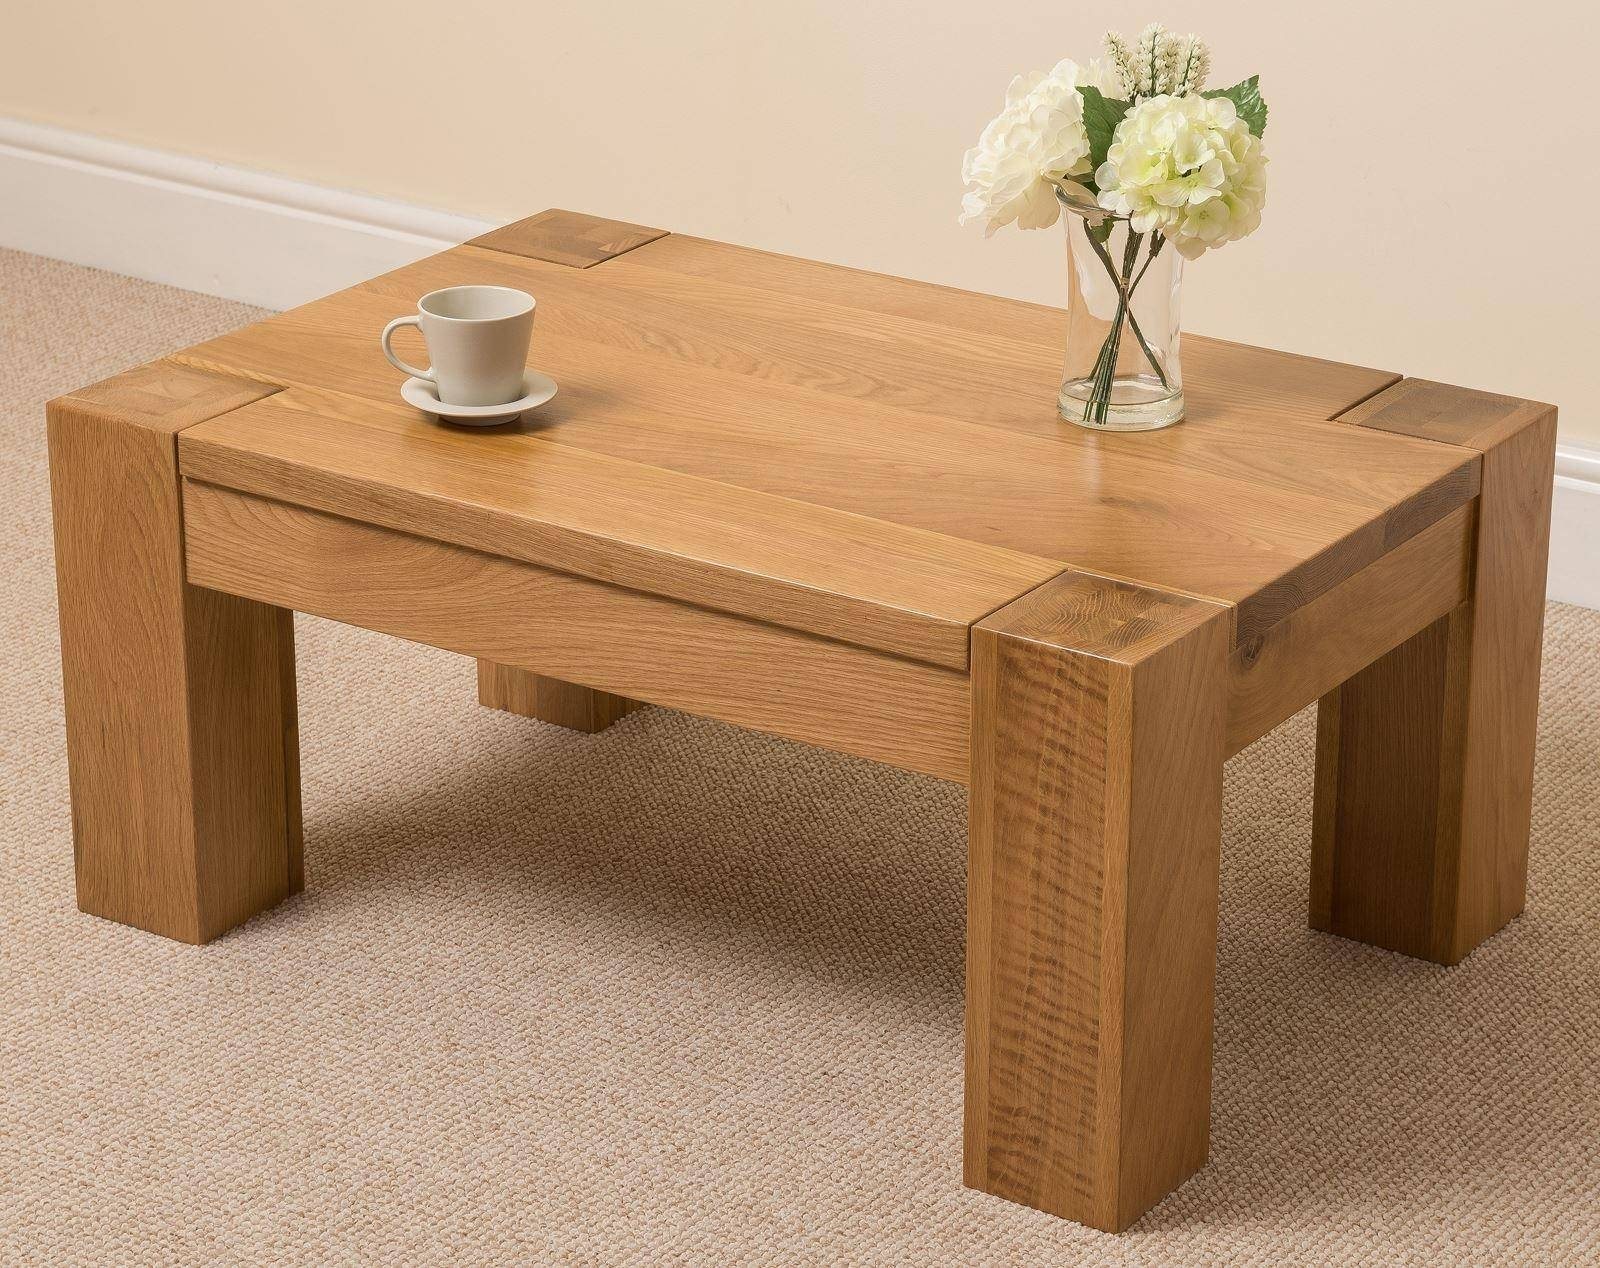 All You Need To Know About Solid Oak Coffee Tables - Chinese inside Round Oak Coffee Tables (Image 1 of 30)